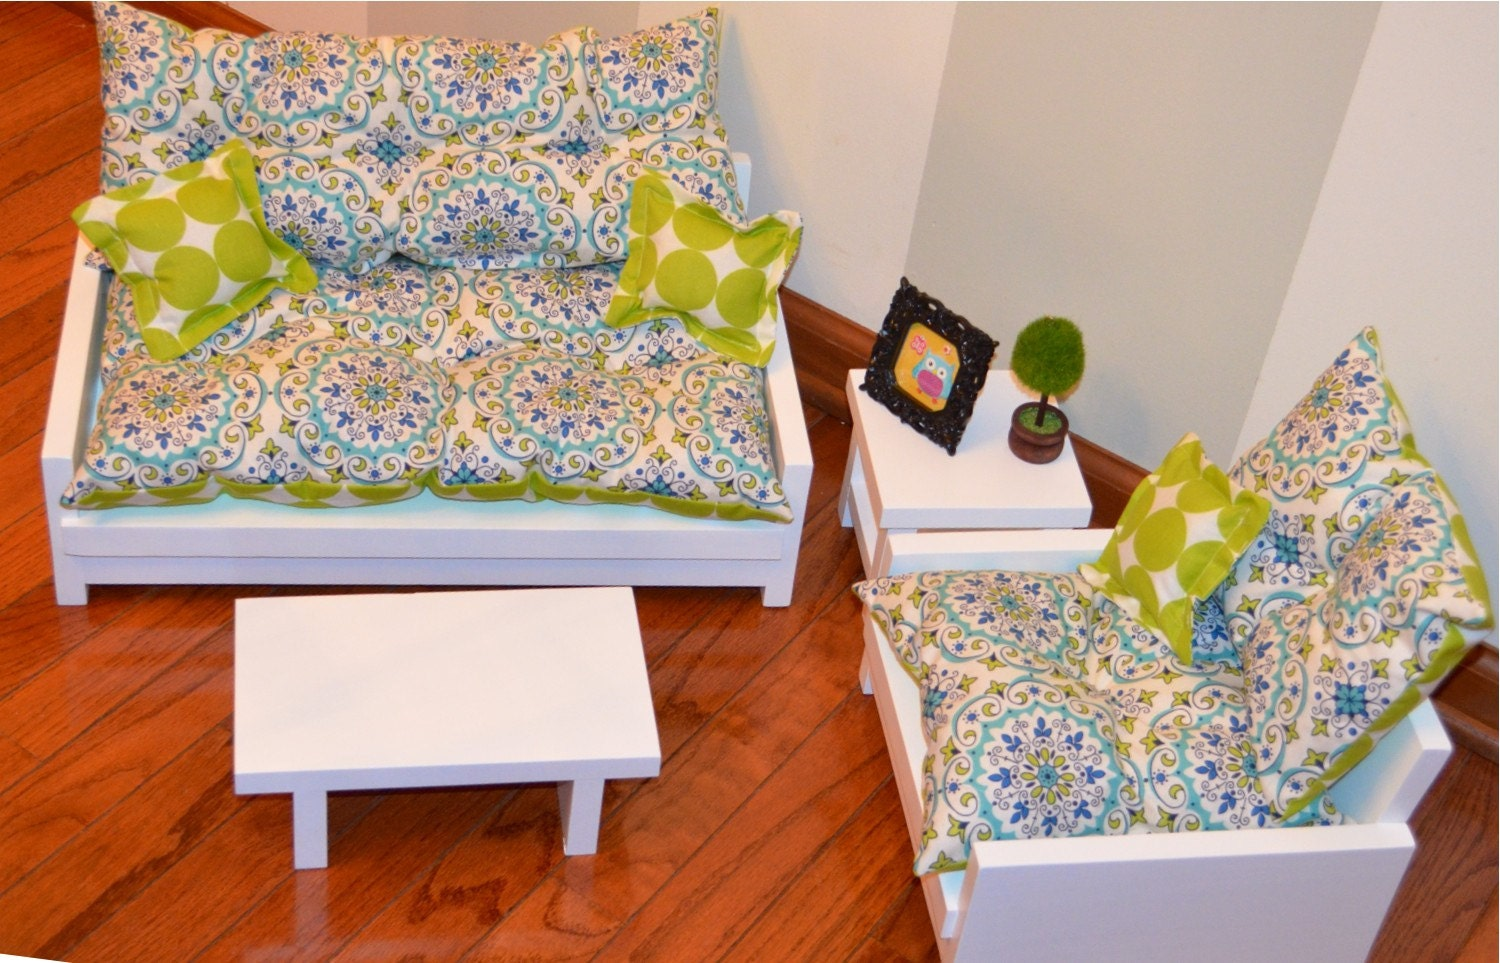 Pc living room set for american girl doll by getdolledupdesigns